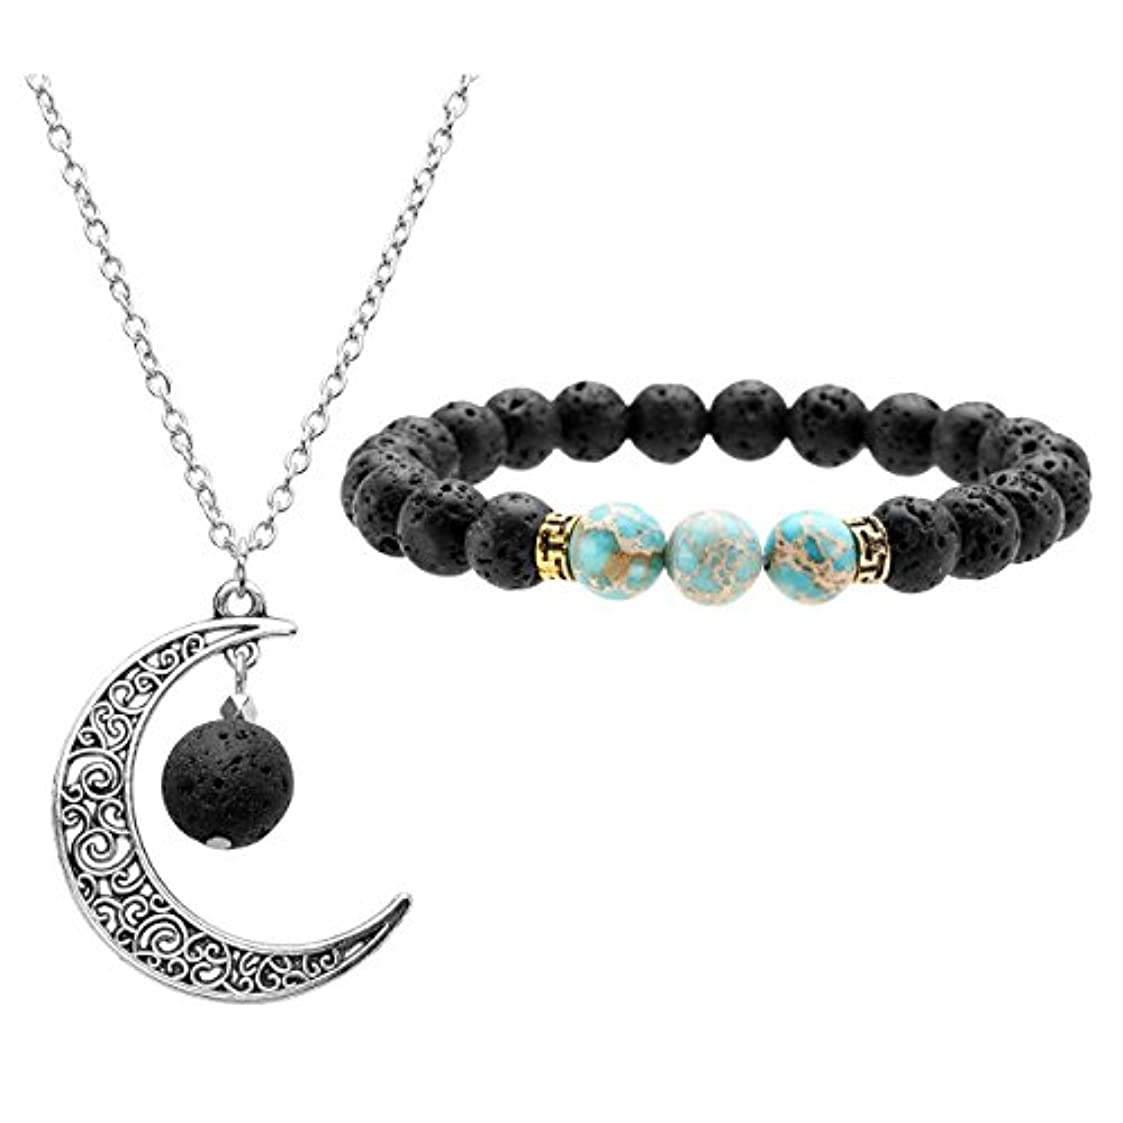 ヒット避難する明るくするJOVIVI Lava Stone Aromatherapy Essential Oil Diffuser Necklace Bracelet Set- Crescent Moon Jewellery